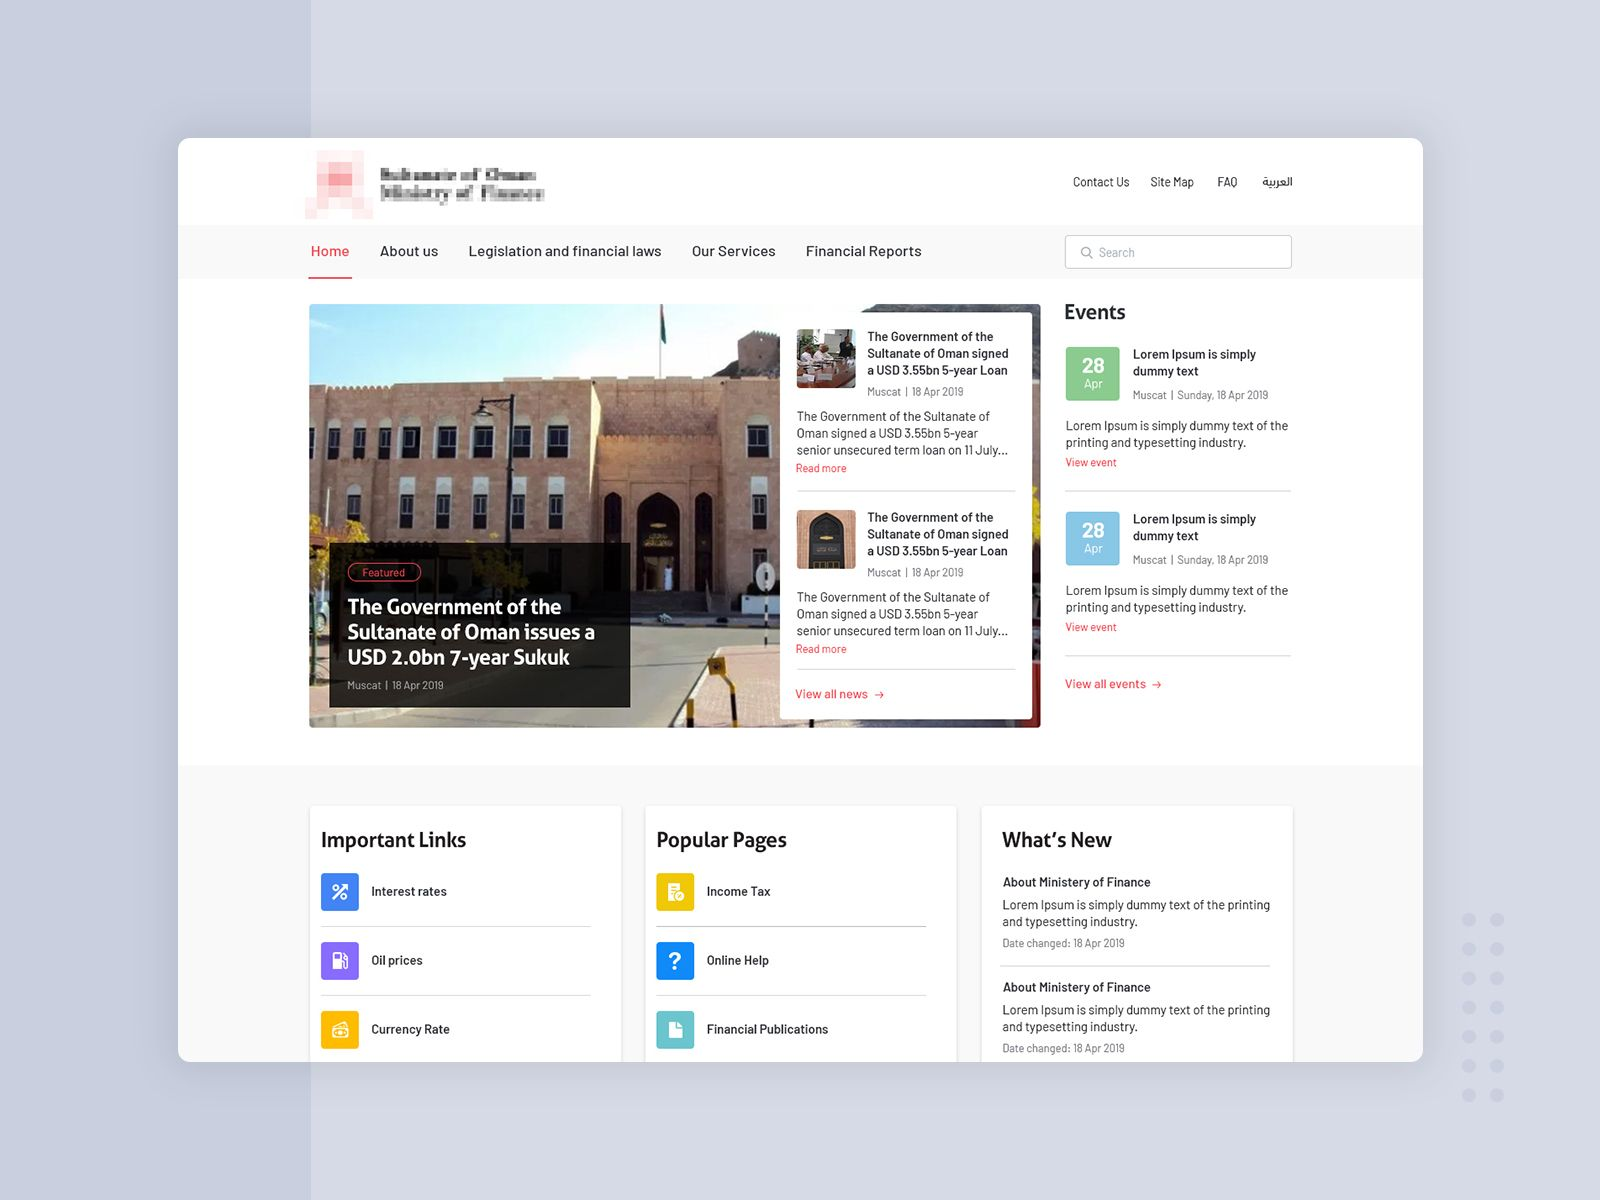 Hi there! 👋 Sharing the website design for a ministry we